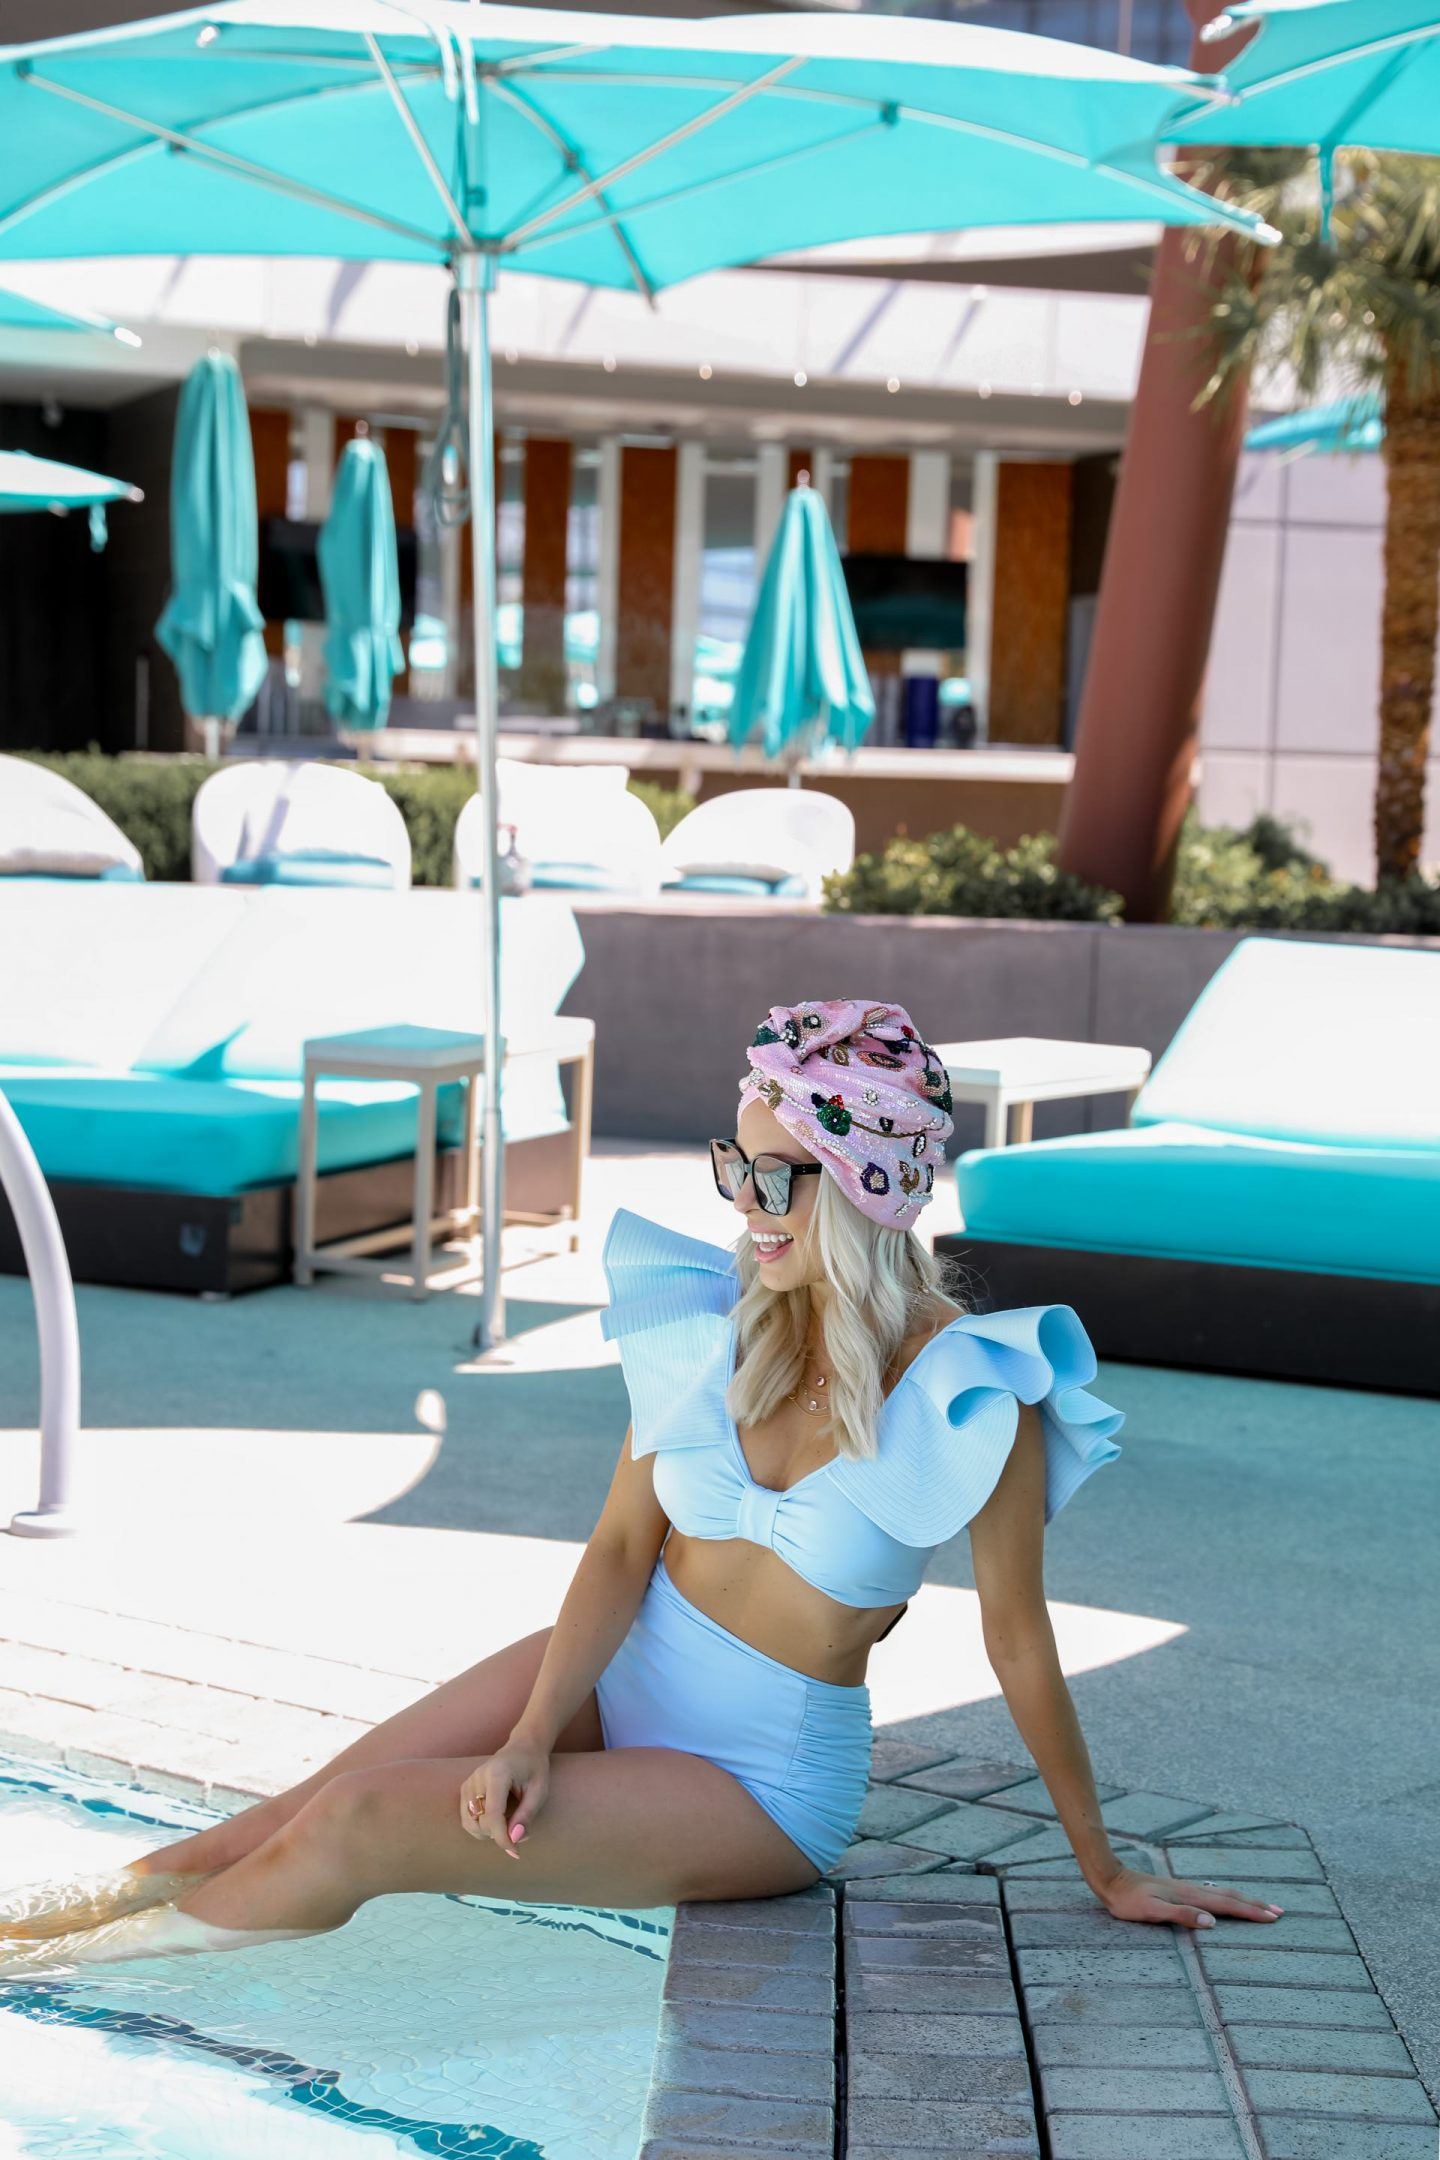 Statement swimwear style inspiration and sequin turbans from Maryjane Claverol, by Lombard & Fifth Veronica Levy. Chicwish swimsuit Plunging V-Neck Bowknot Ruffle Trim Bikini Set